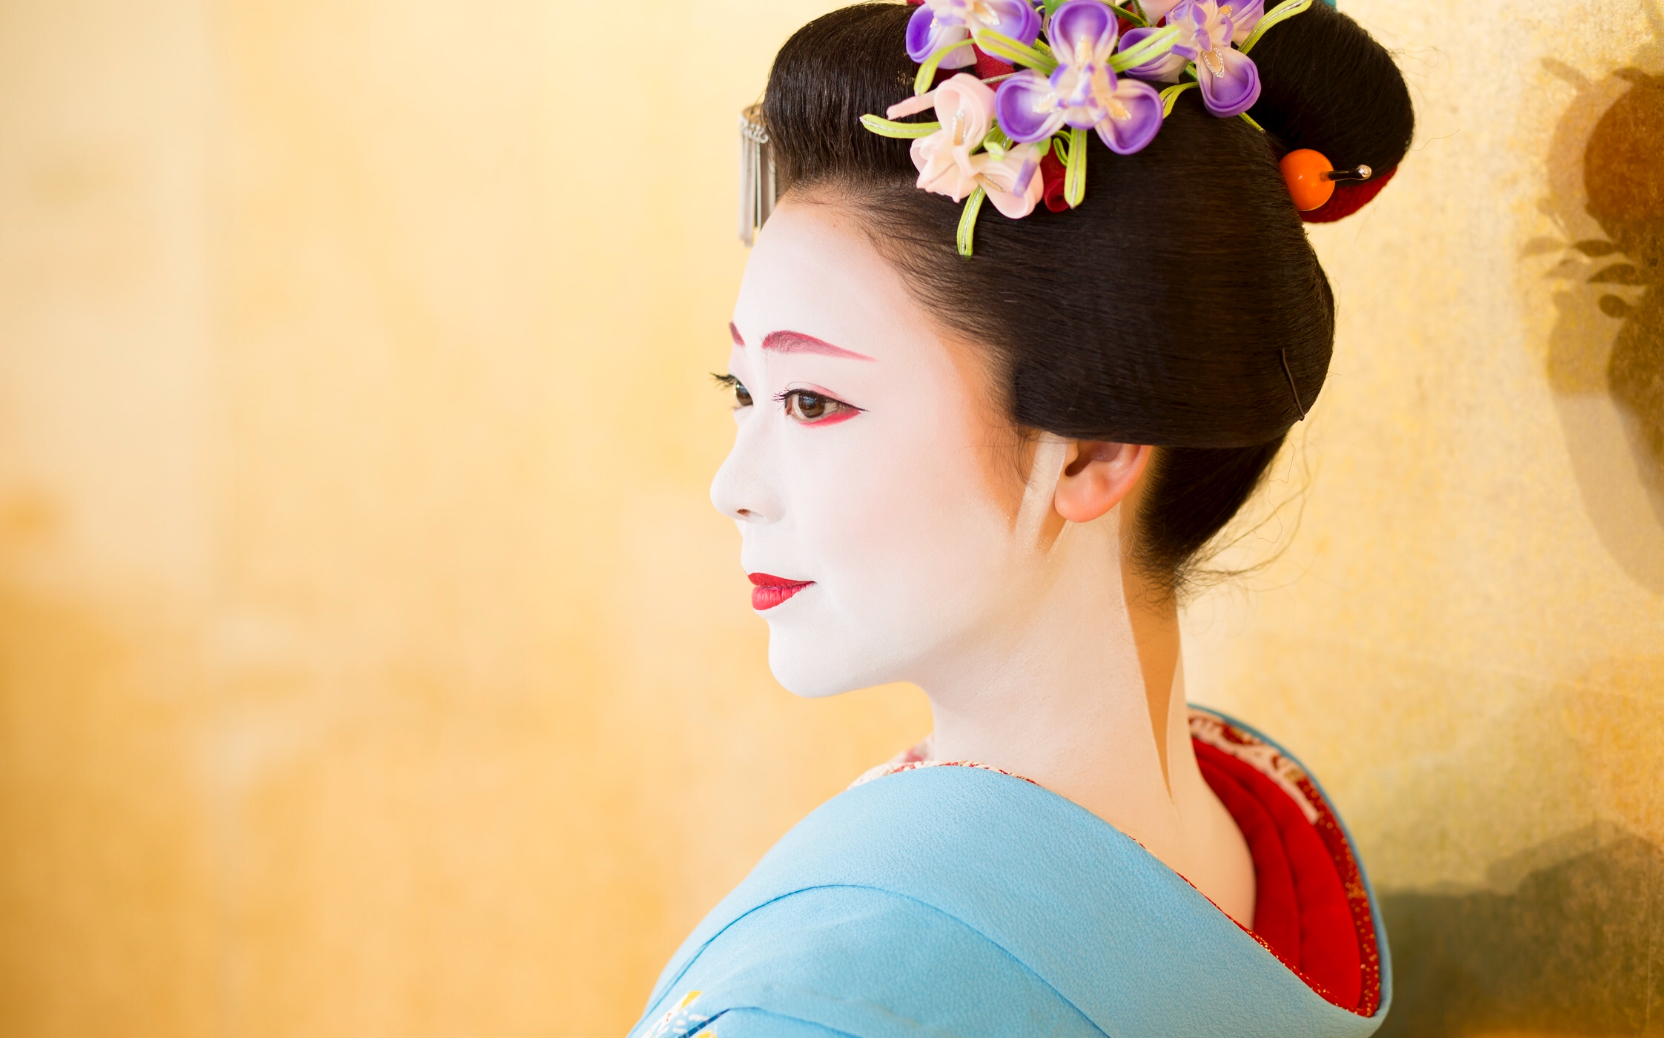 Maiko Theatre: Get up close with beautiful Maiko!